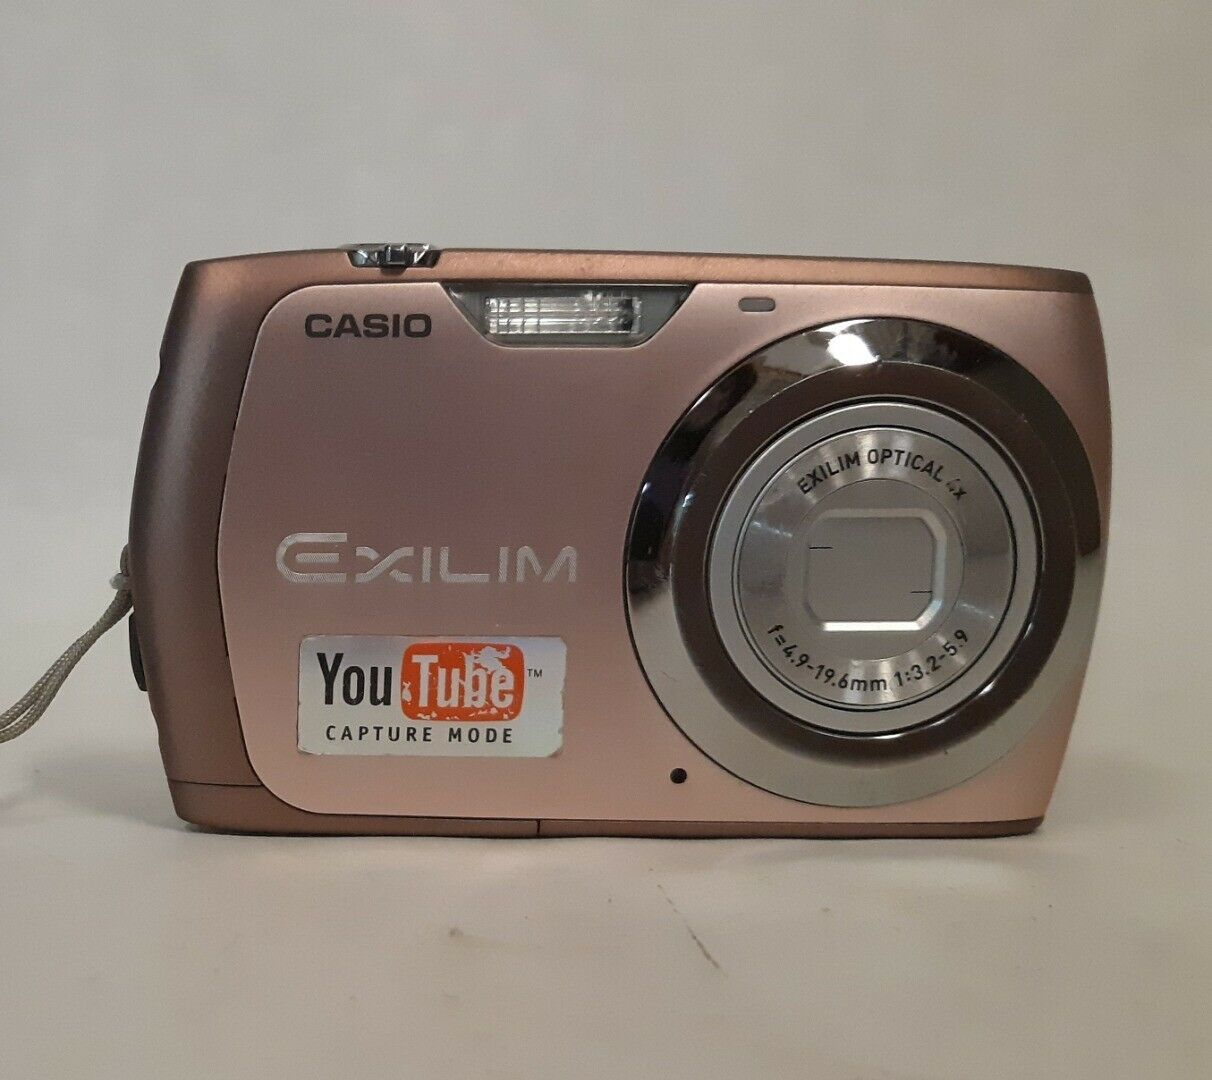 Primary image for Casio EXILIM 12.1 MP Digital Camera You Tube Capture Mode Pink Untested